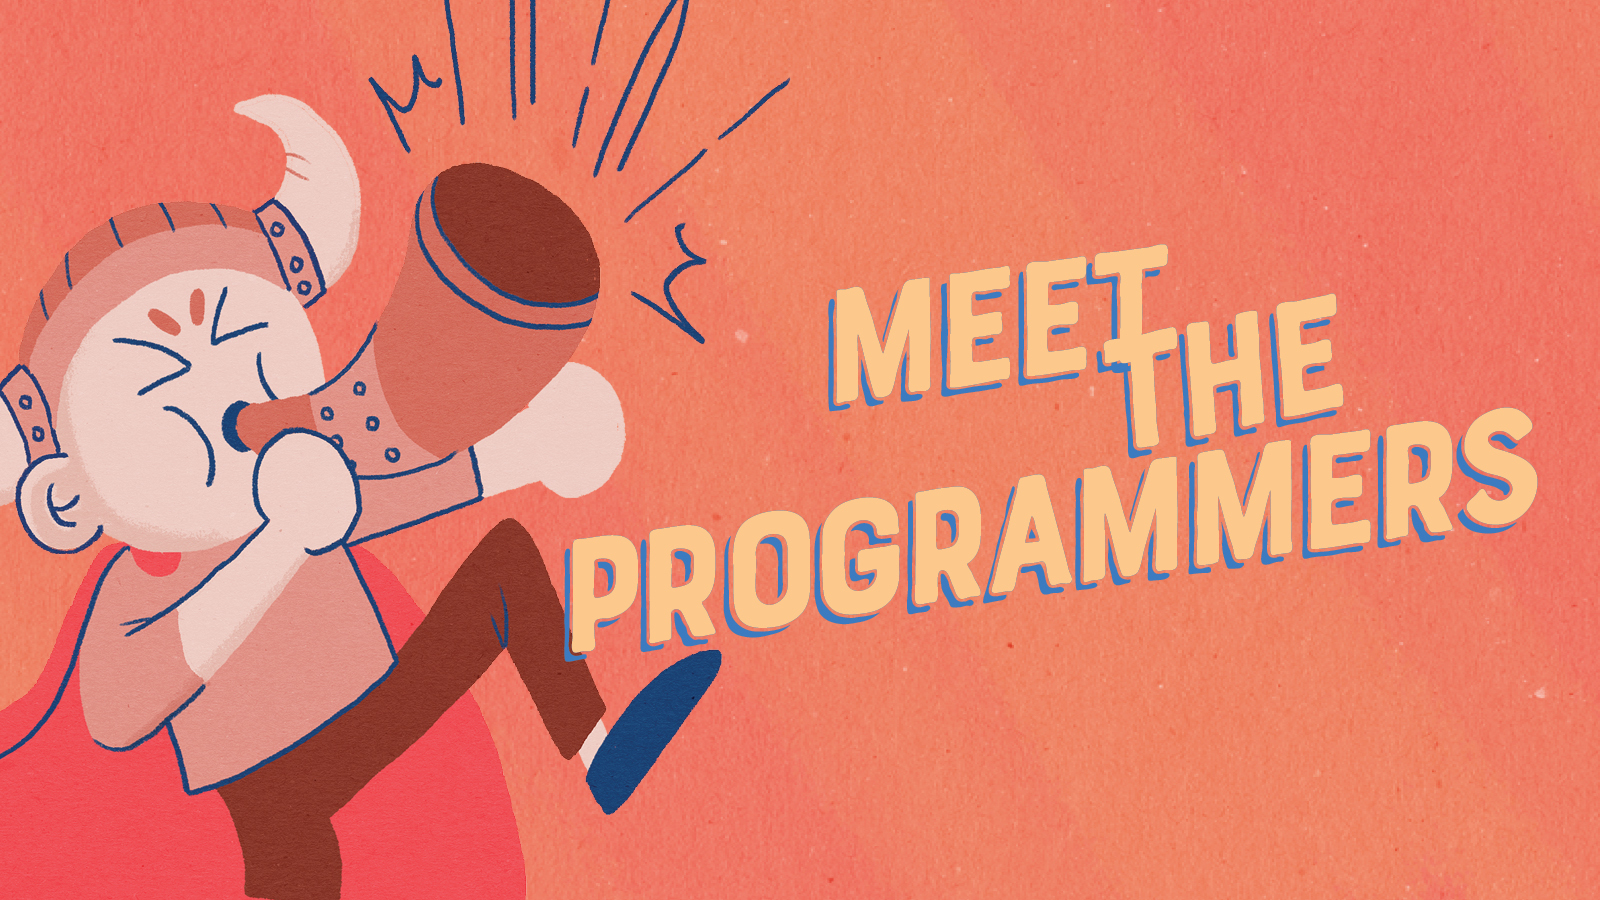 Meet the Programmers